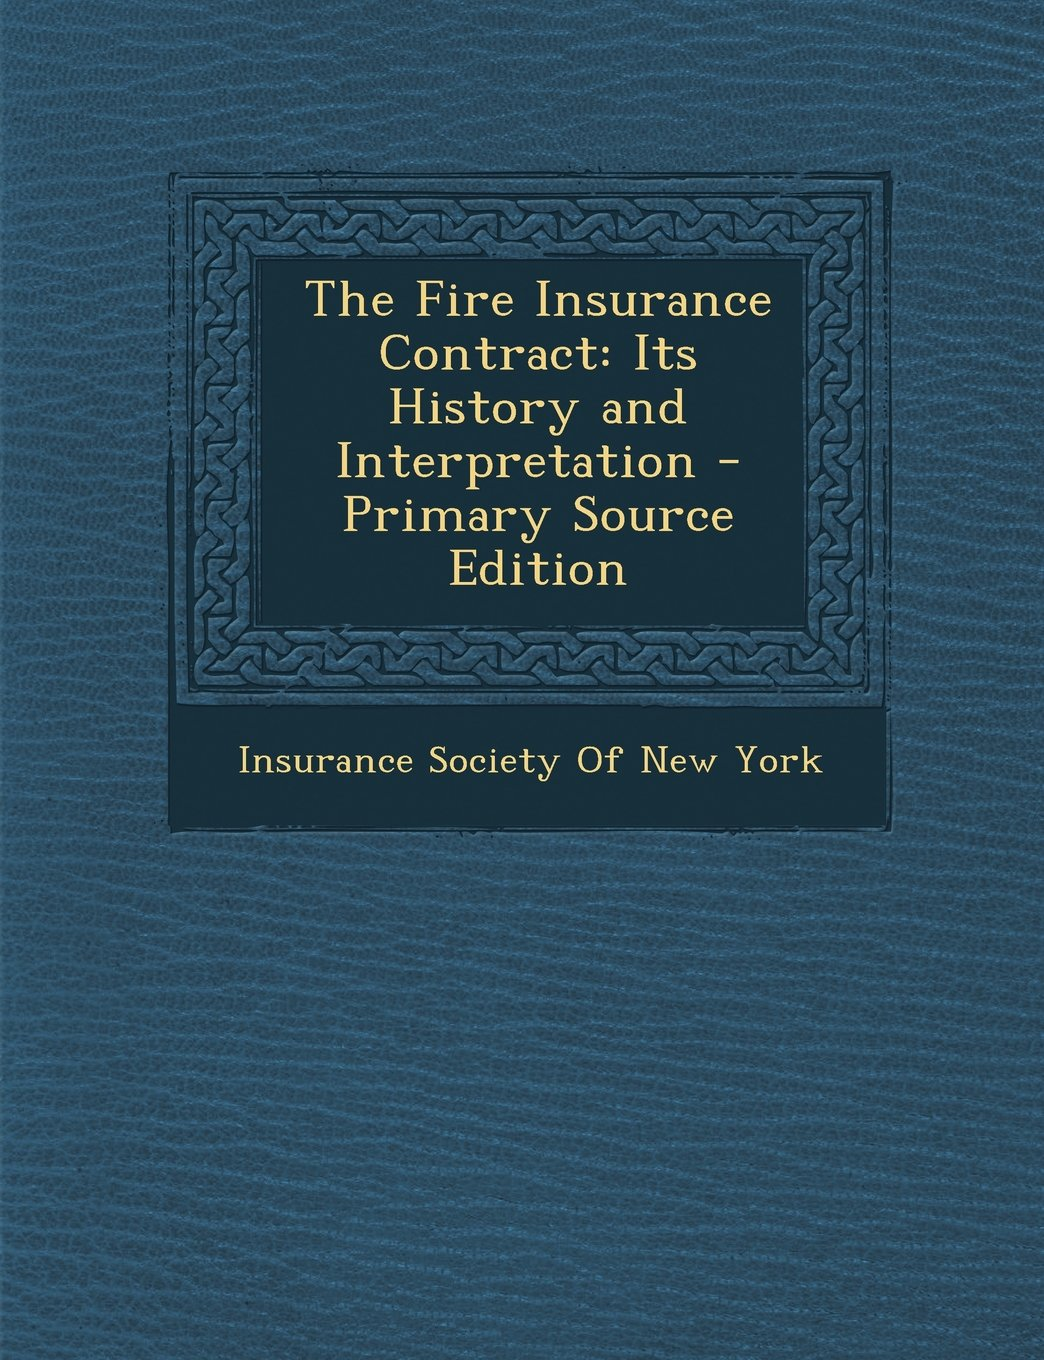 The Fire Insurance Contract: Its History and Interpretation - Primary Source Edition PDF ePub book